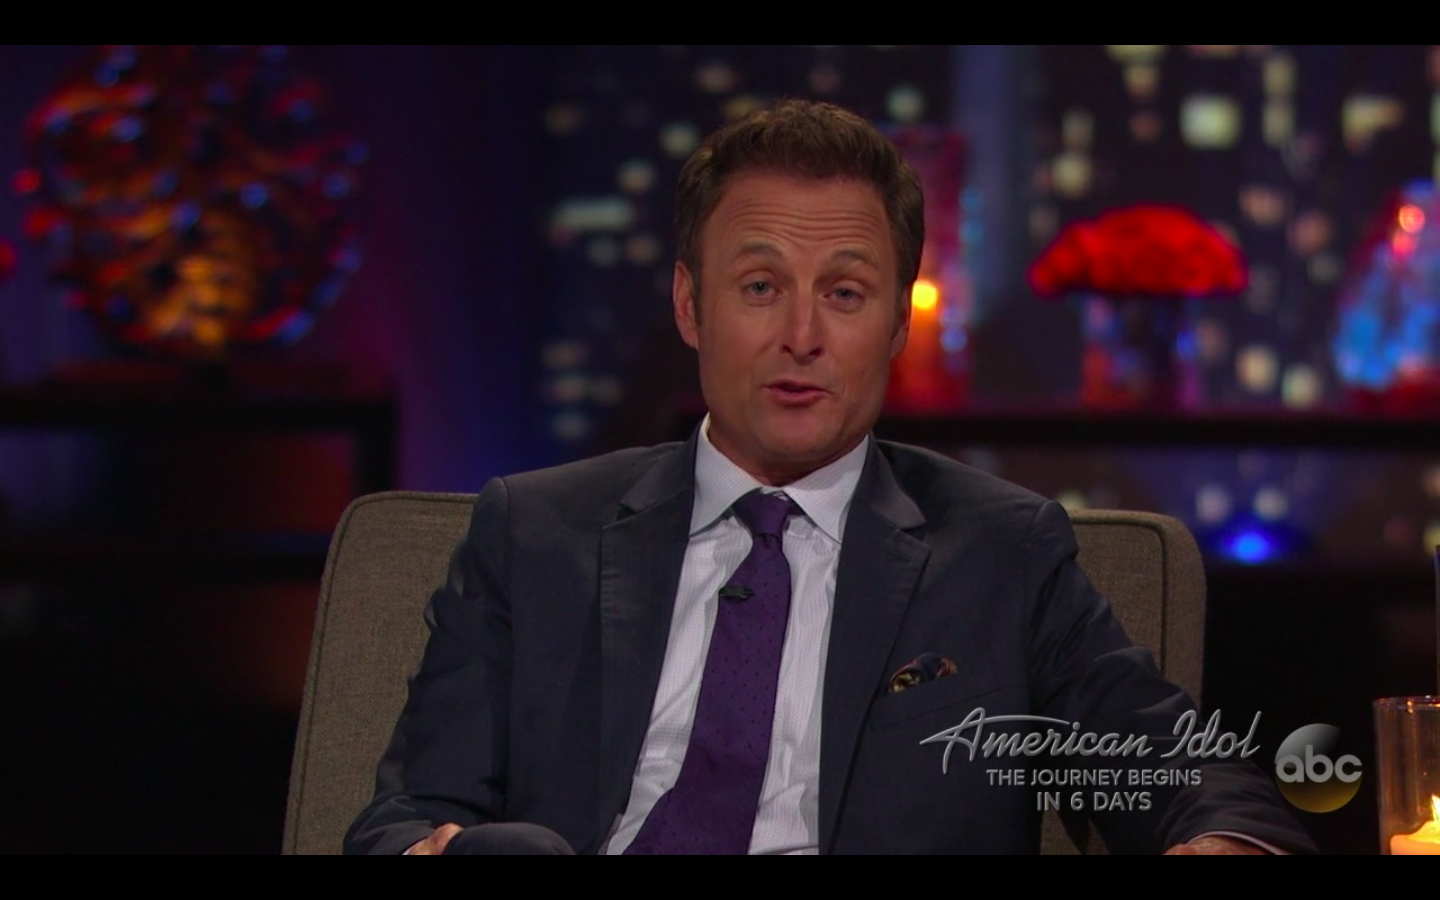 Chris Harrison on The Bachelor.